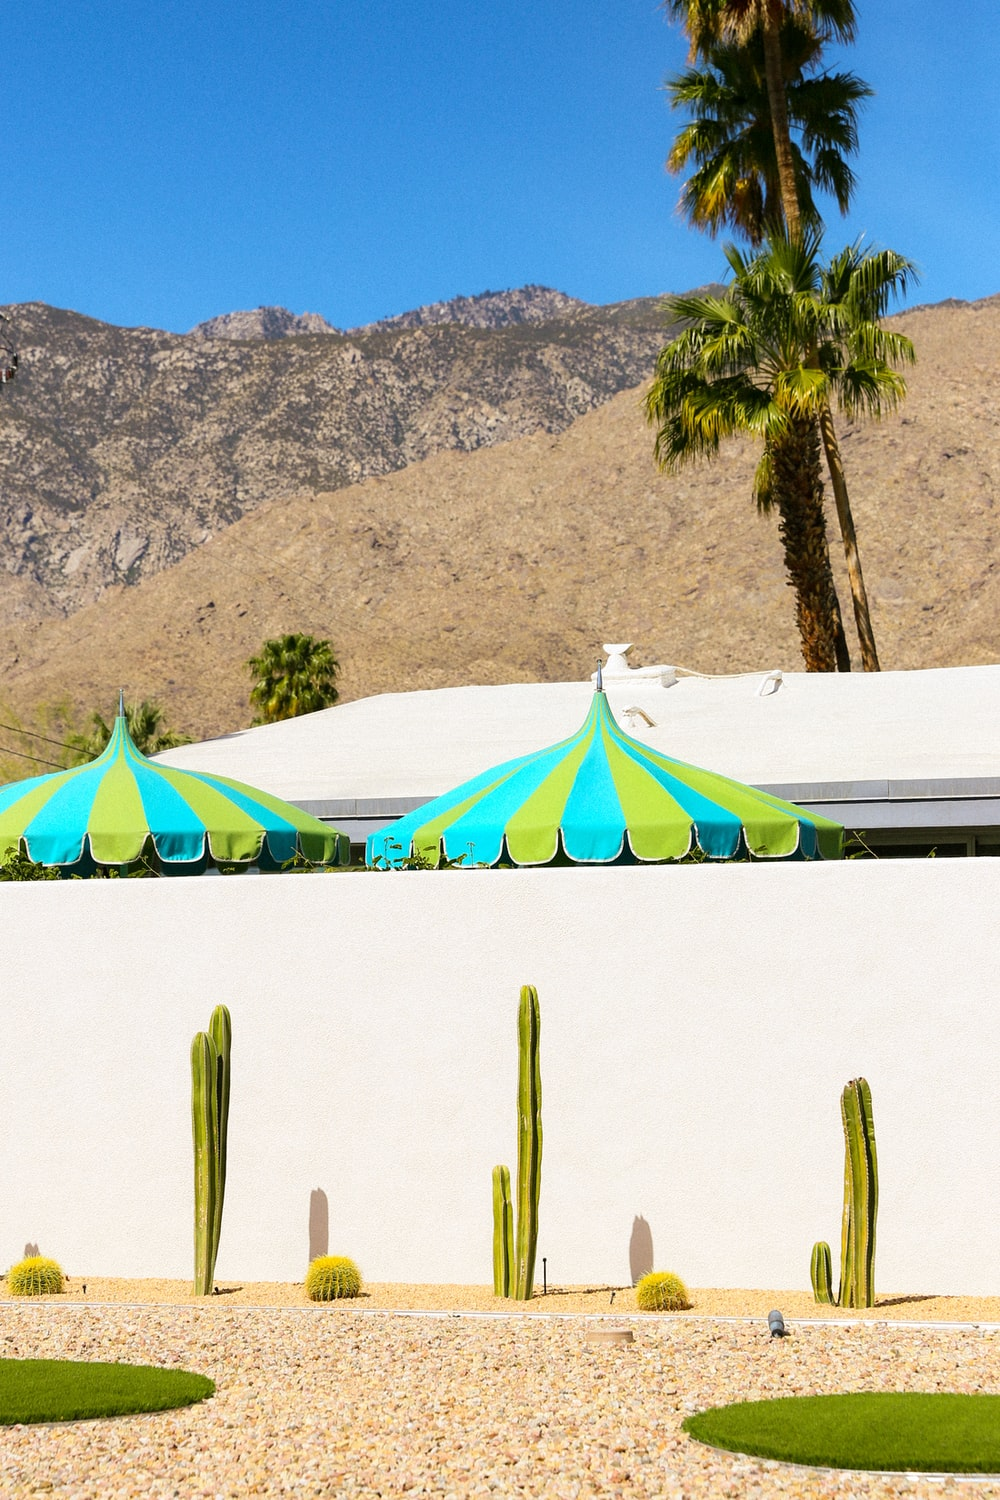 green palm trees near white and blue beach umbrellas during daytime